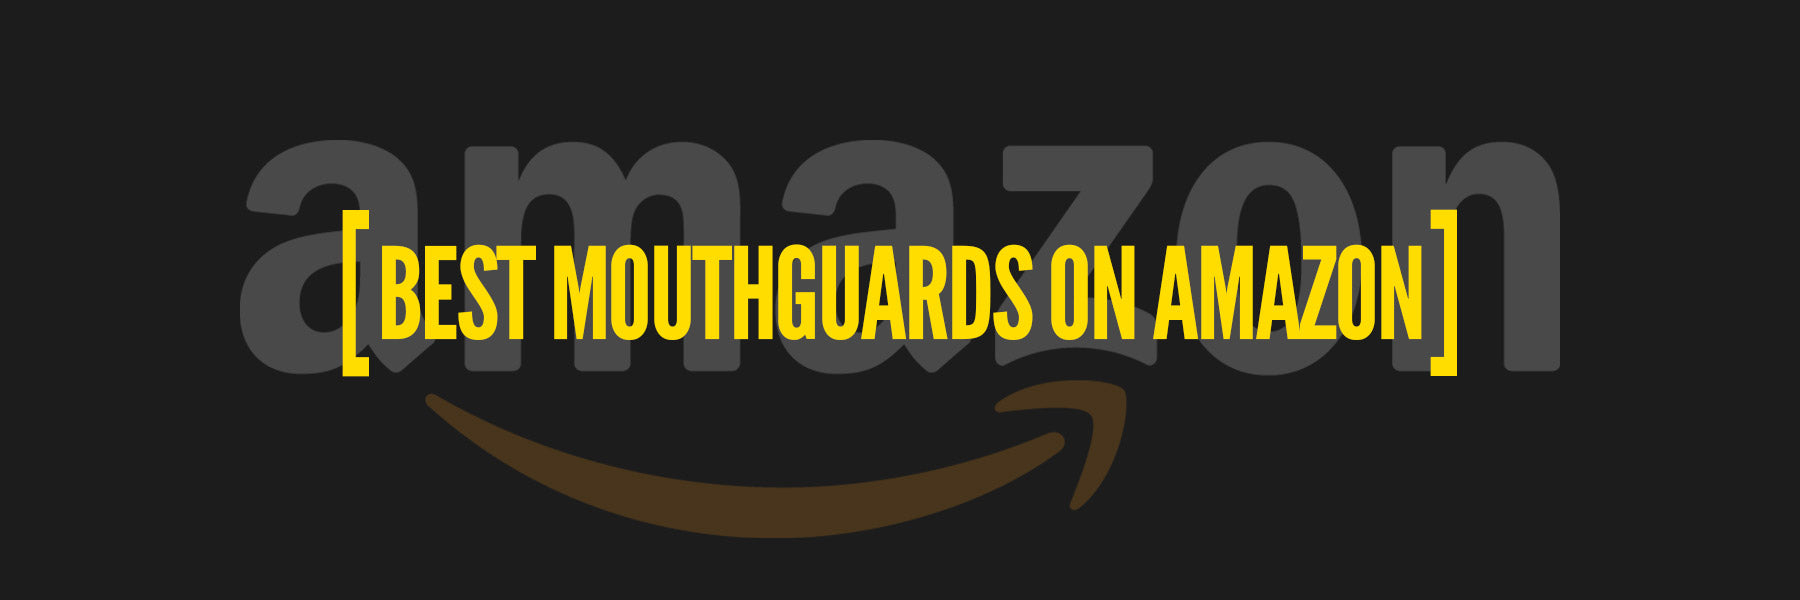 Best Mouthguards Amazon